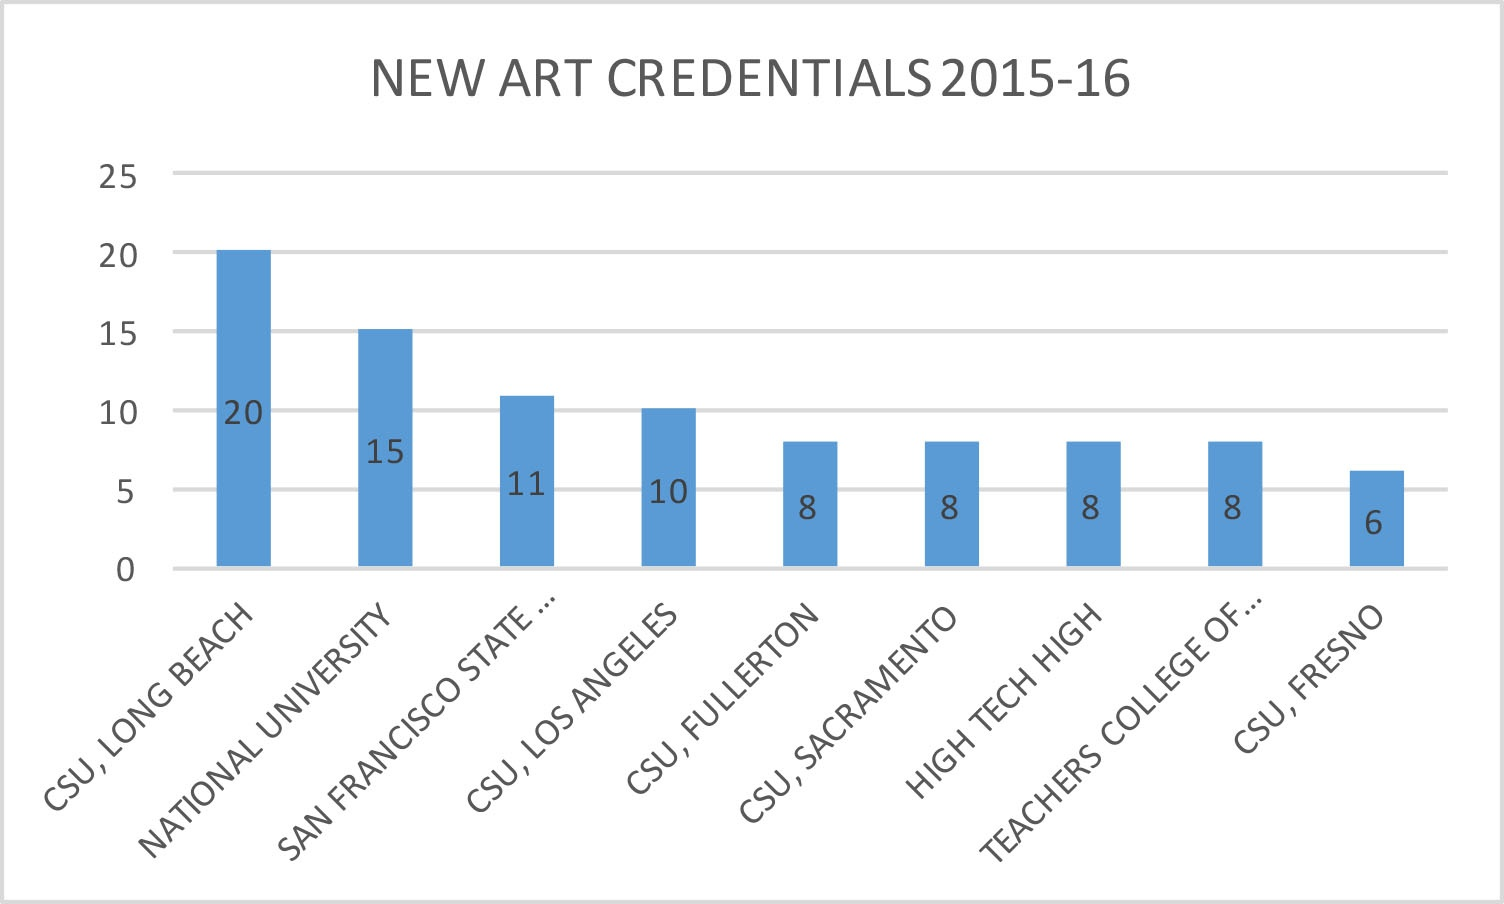 chart with 2015 credentialas